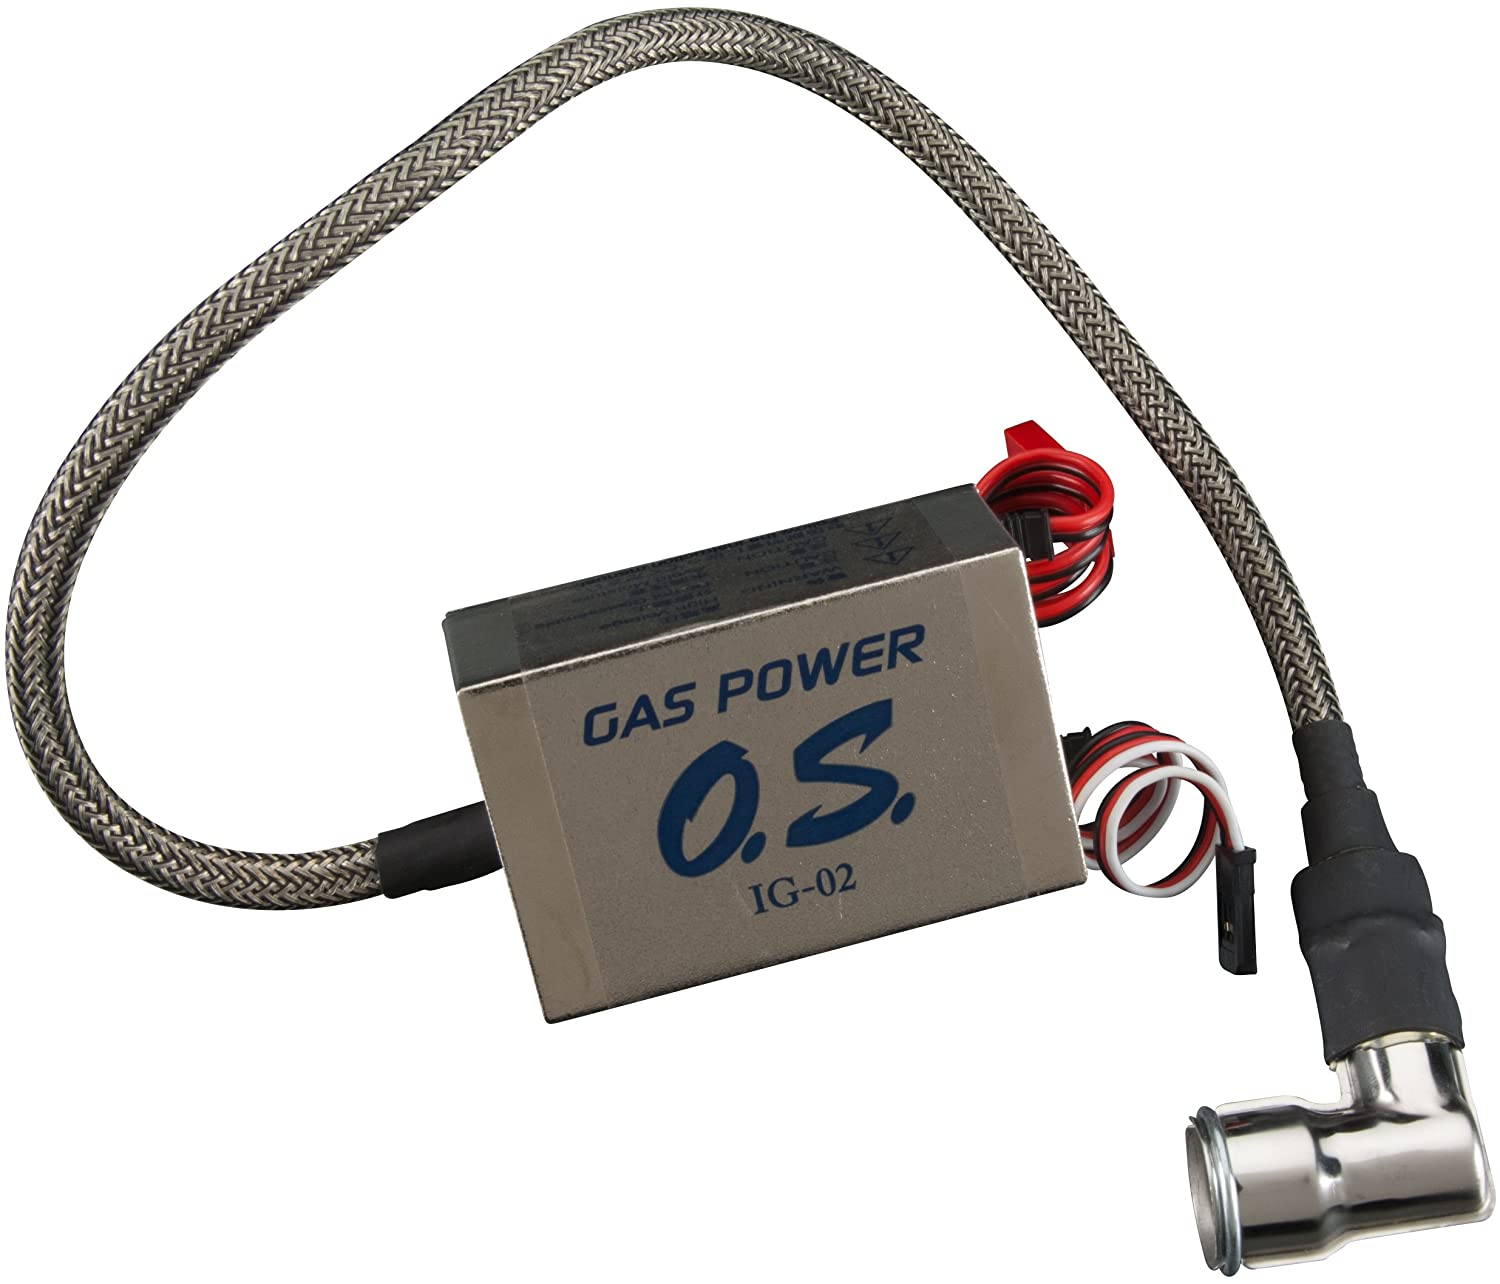 Engines 74002310 Ignition Module for IG-02 GT33 Engine O.S